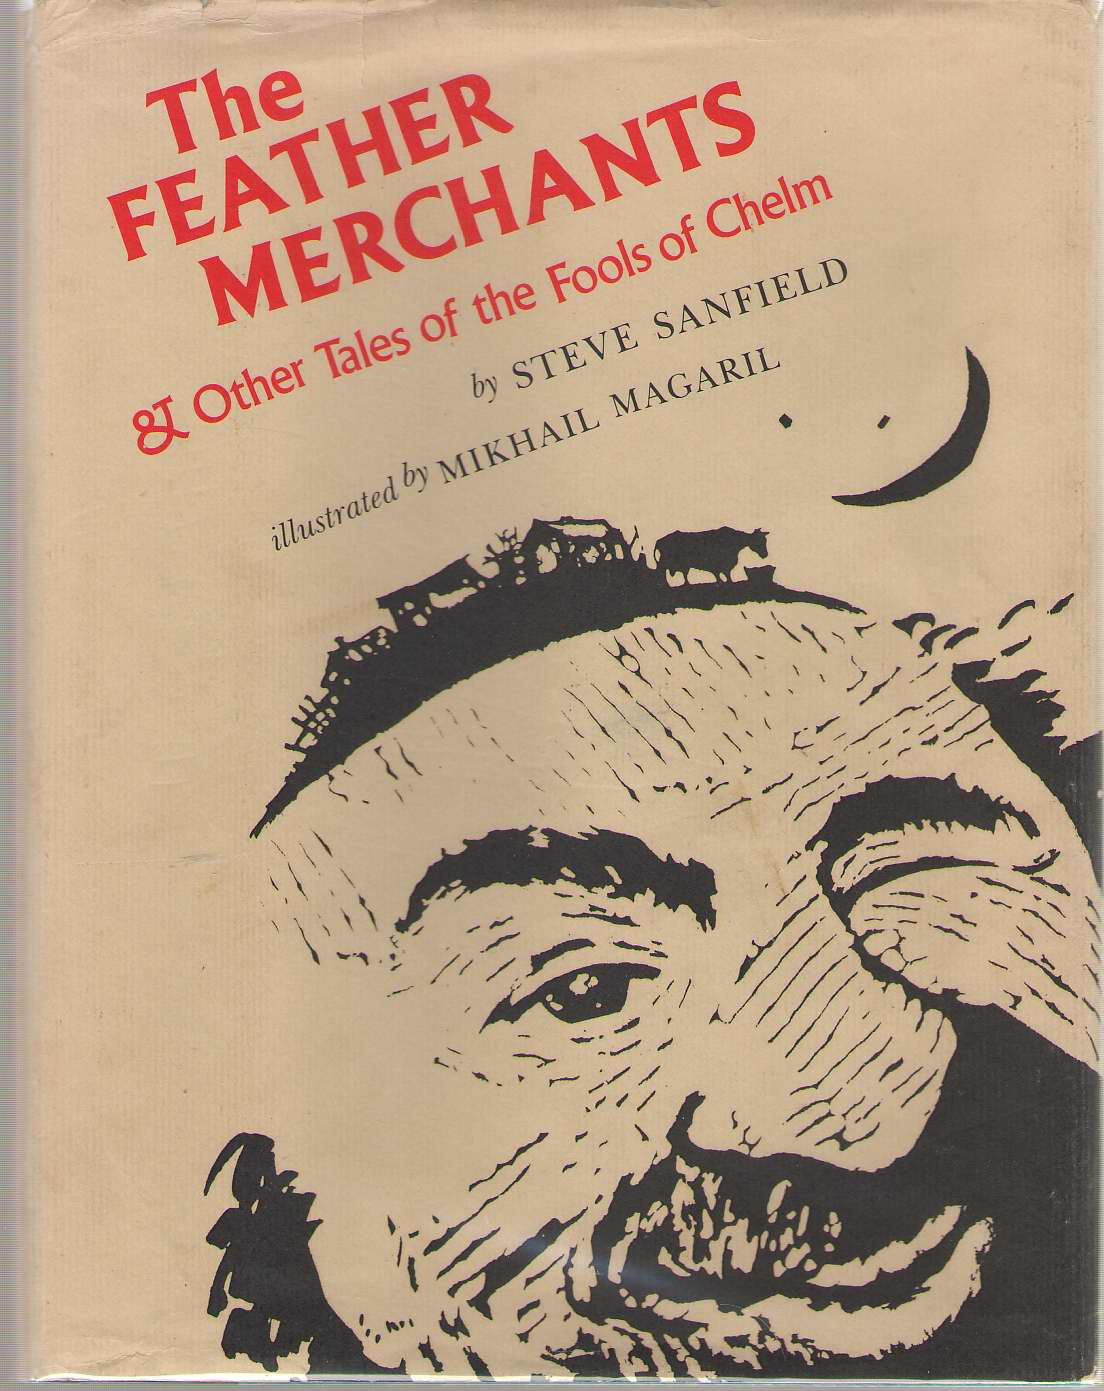 The Feather Merchants and Other Tales of the Fools of Chelm, Sanfield, Steve & Mikhail Magaril (Illustrator)